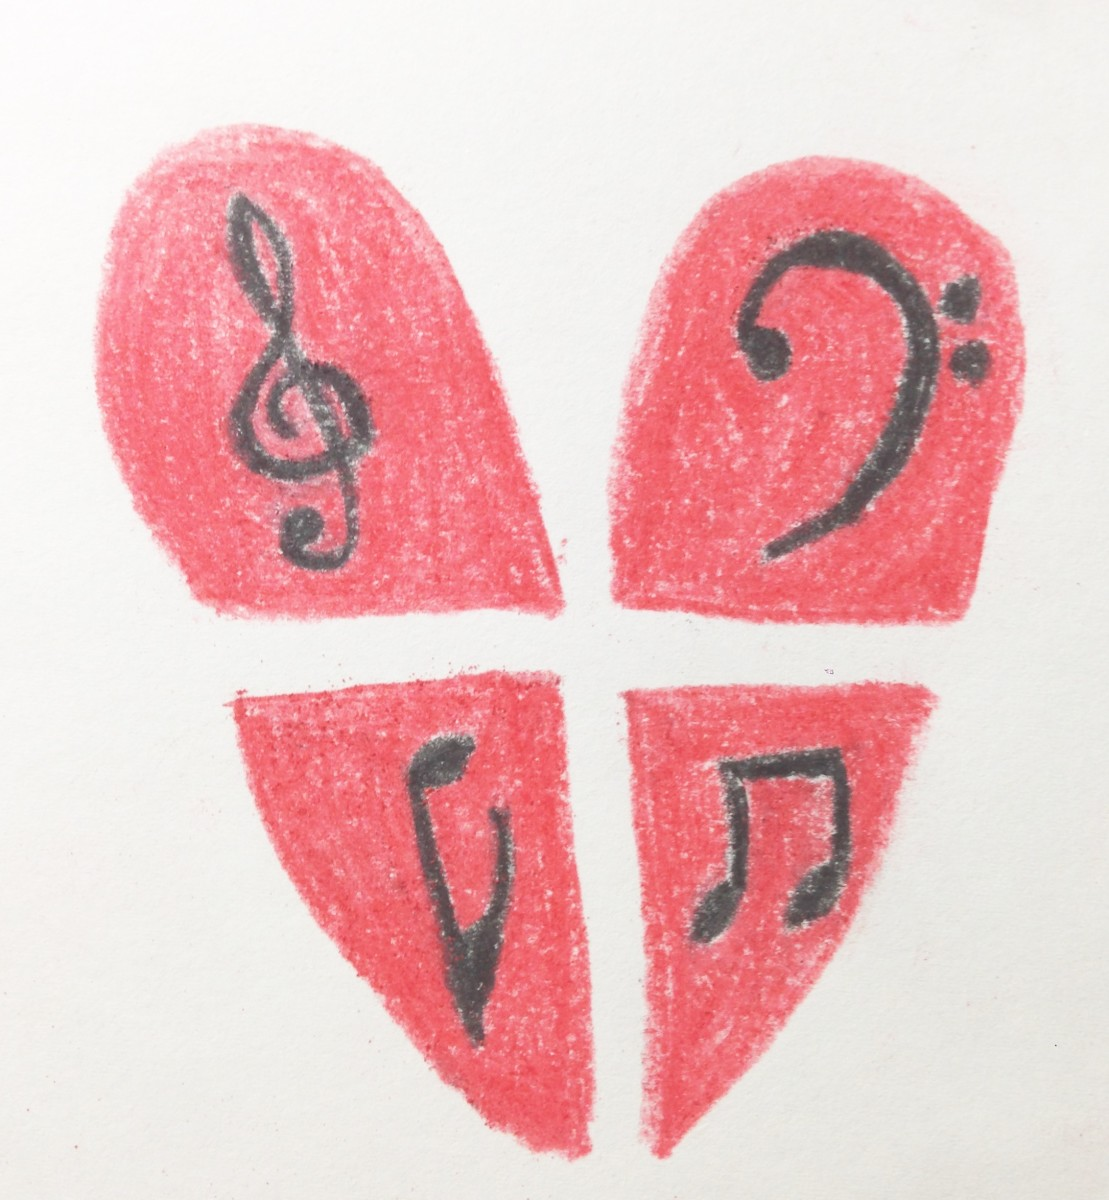 Melody Represented By Music Symbols